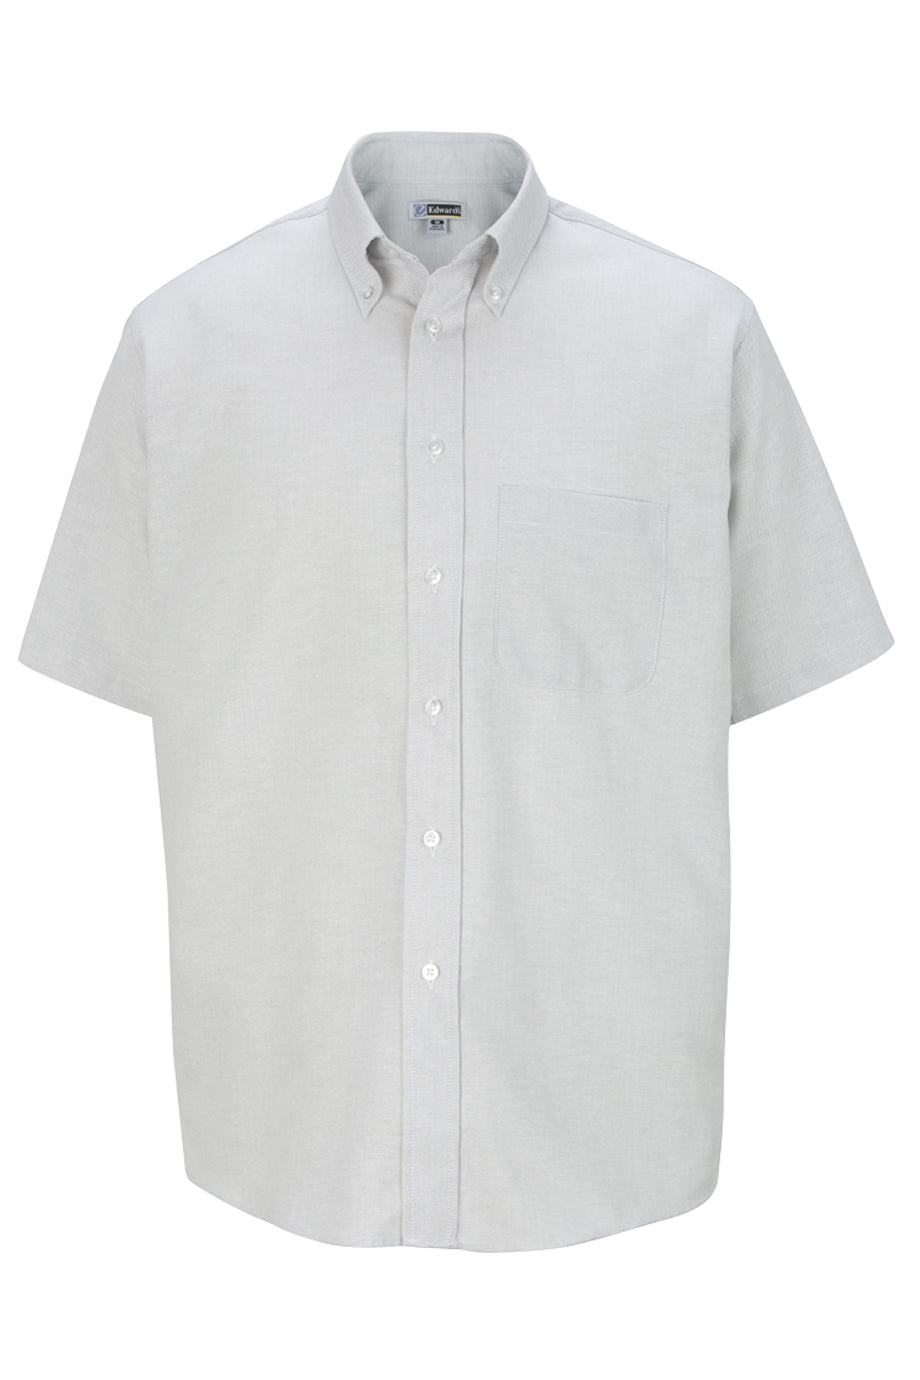 Light Grey Edwards Mens Short Sleeve Oxford Shirt